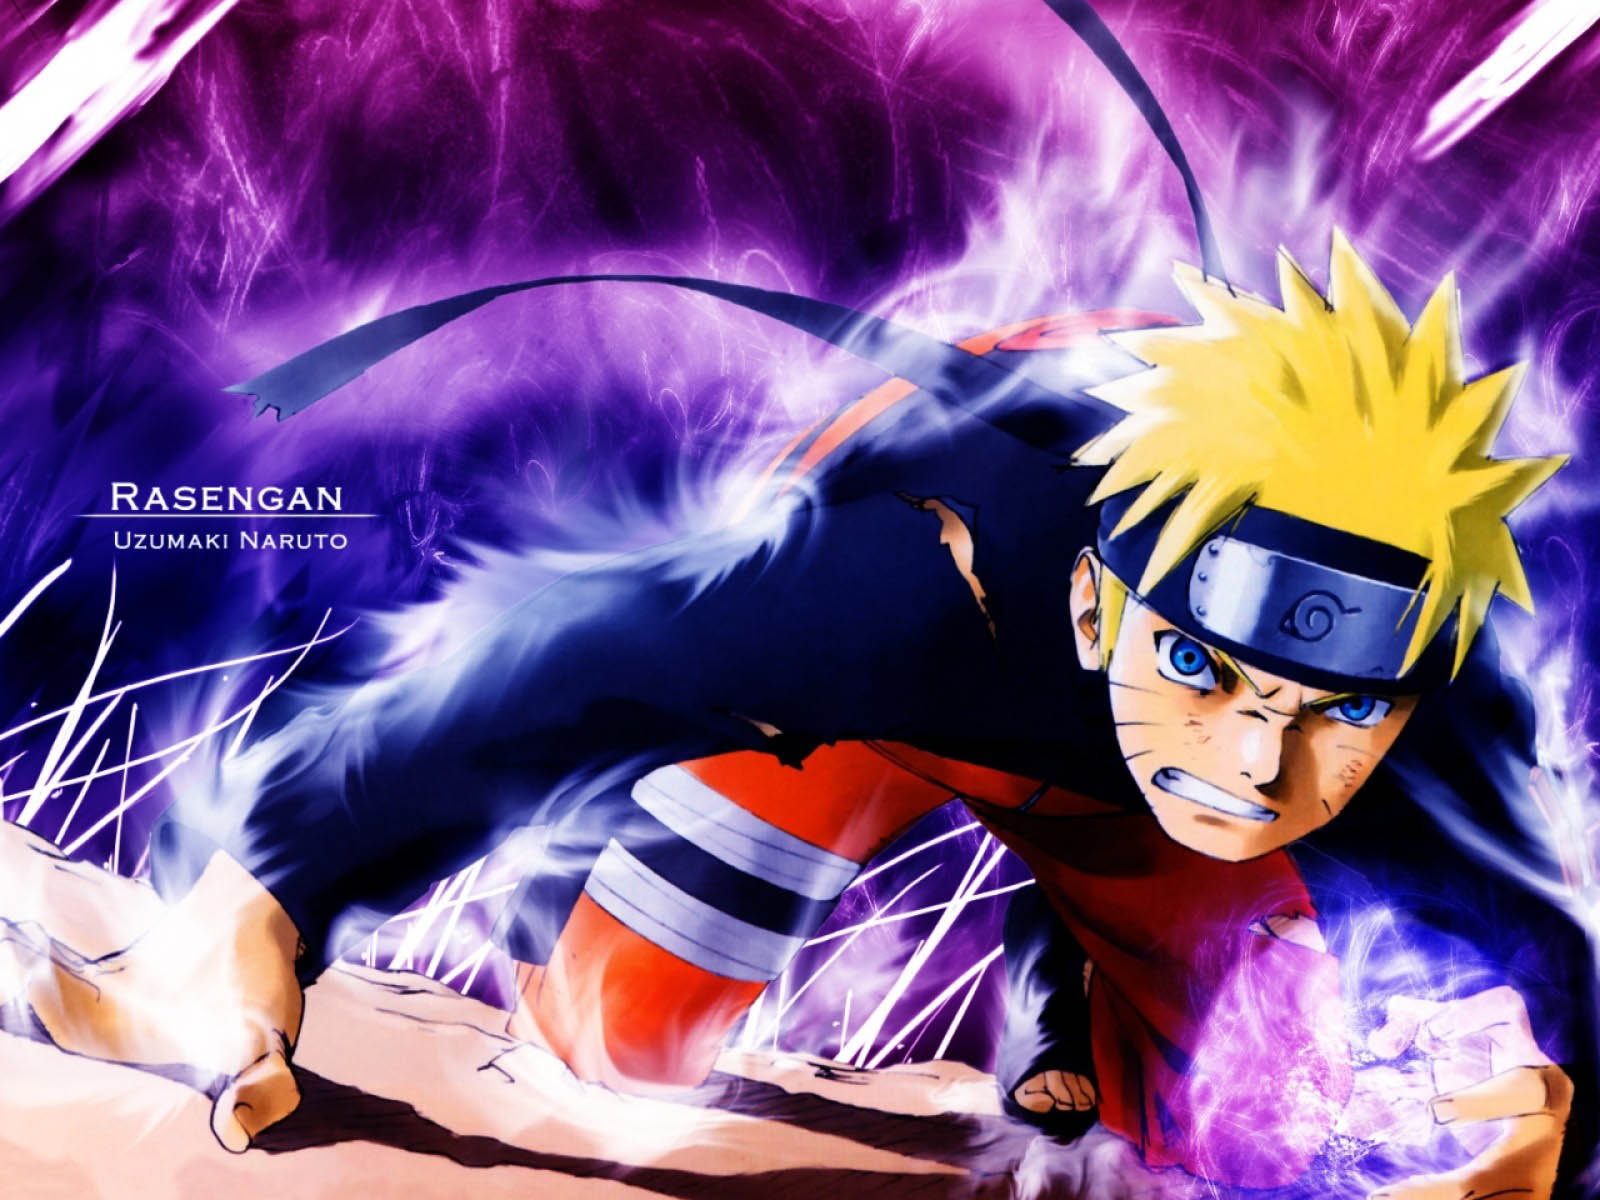 Gallery Mangklex: HOT 2013 Popular Naruto Shippuden Wallpapers